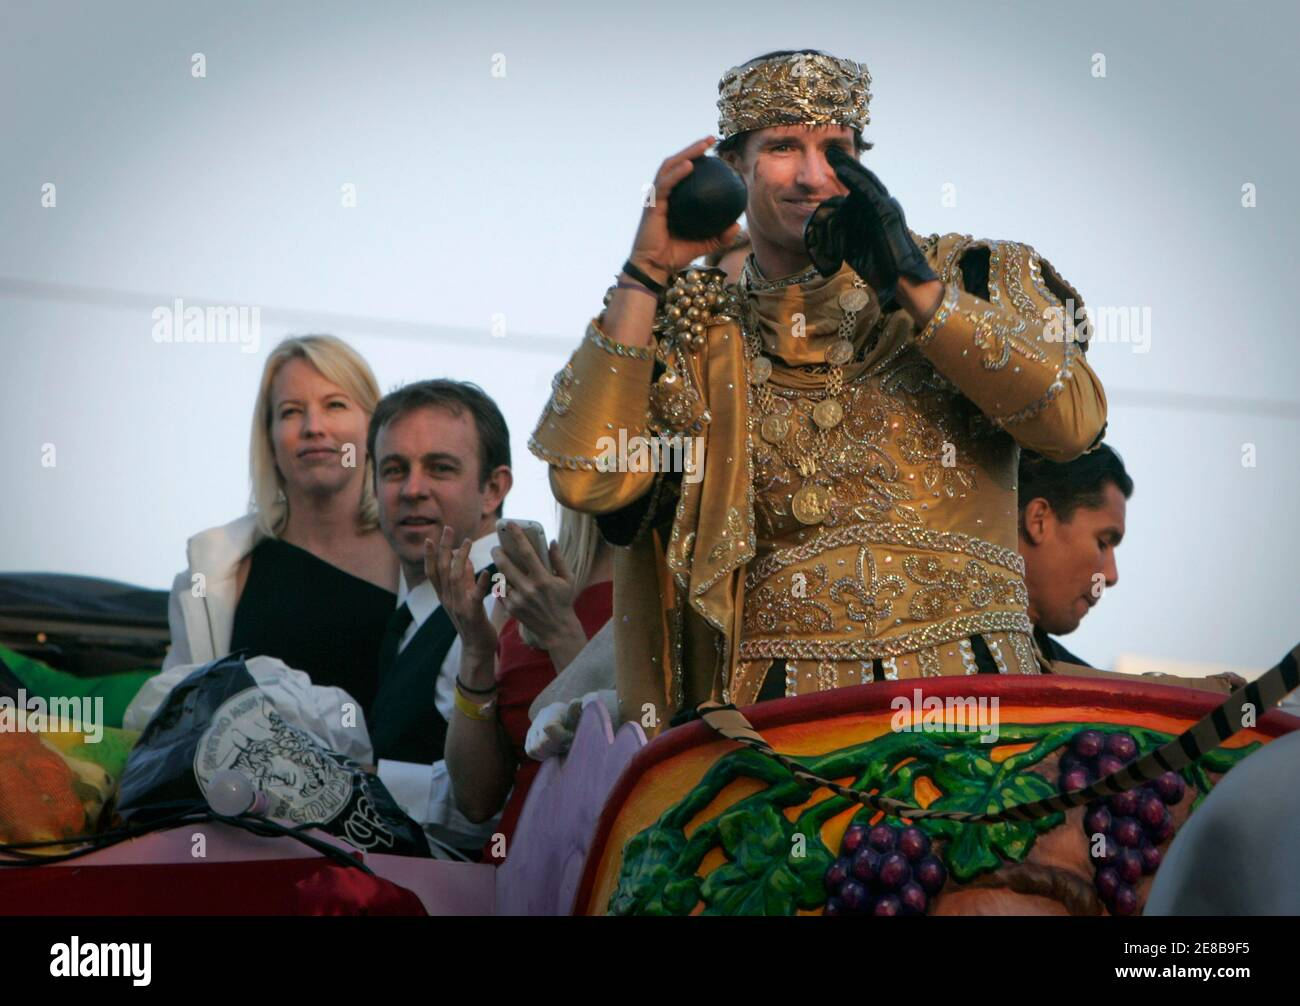 New Orleans Saints' quarterback Drew Brees, dressed as King of Bacchus, prepares to throw a toy football during the Bacchus Mardi Gras parade in New Orleans, Louisiana February 14, 2010. REUTERS/Lee Celano (UNITED STATES - Tags: SPORT SOCIETY FOOTBALL) Stock Photo